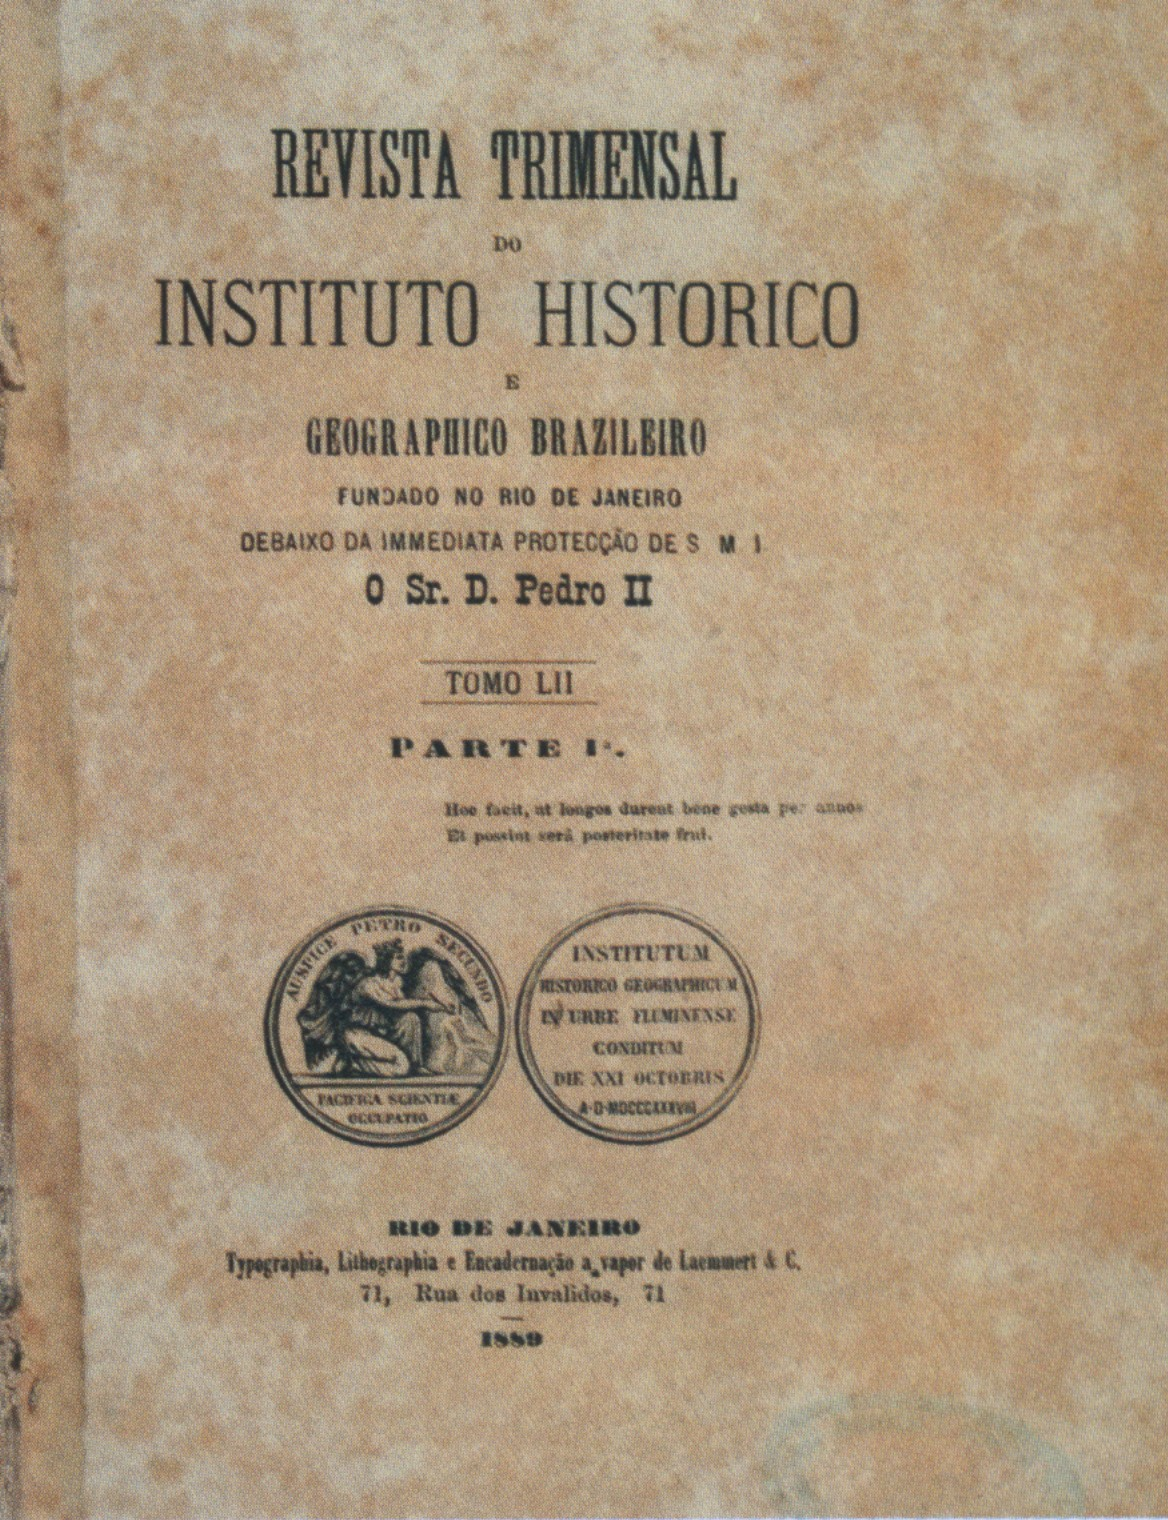 a history of brazil Brief history of brazilian studies the foreign researcher of brazilian themes,  usually identified as brasilianista, played an important role in the emergence of.